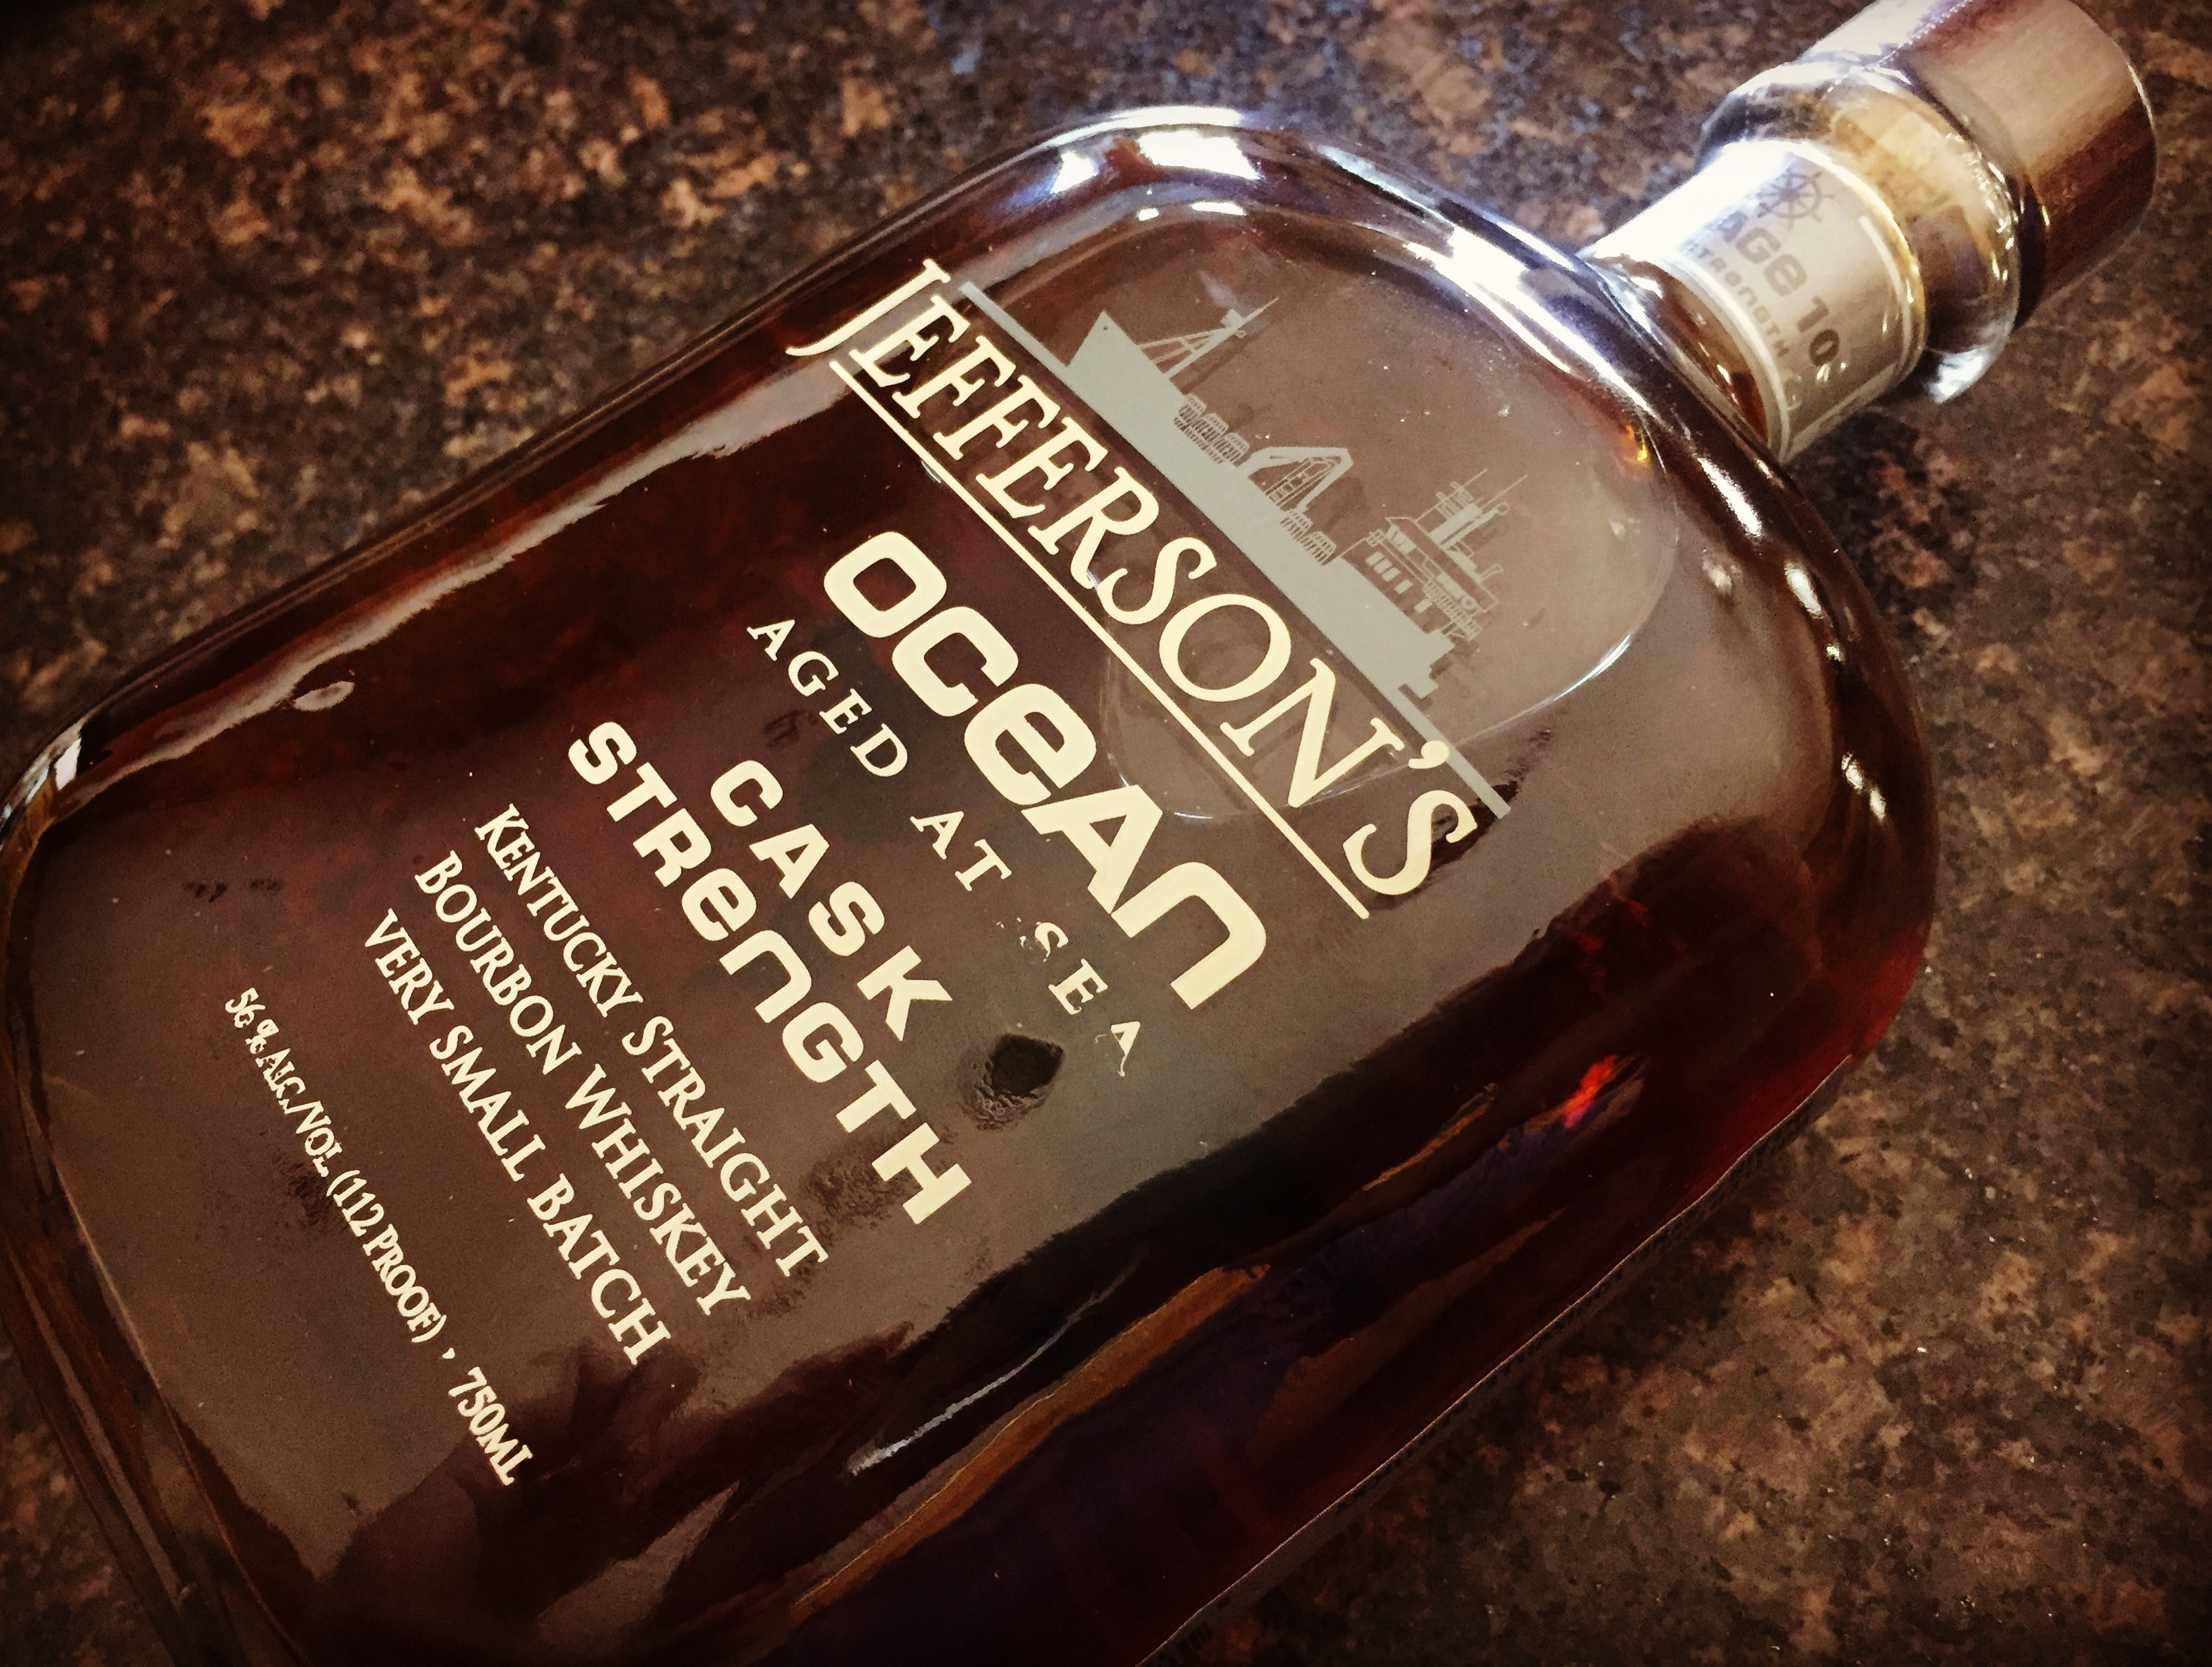 Jefferson's Ocean Cask Strength